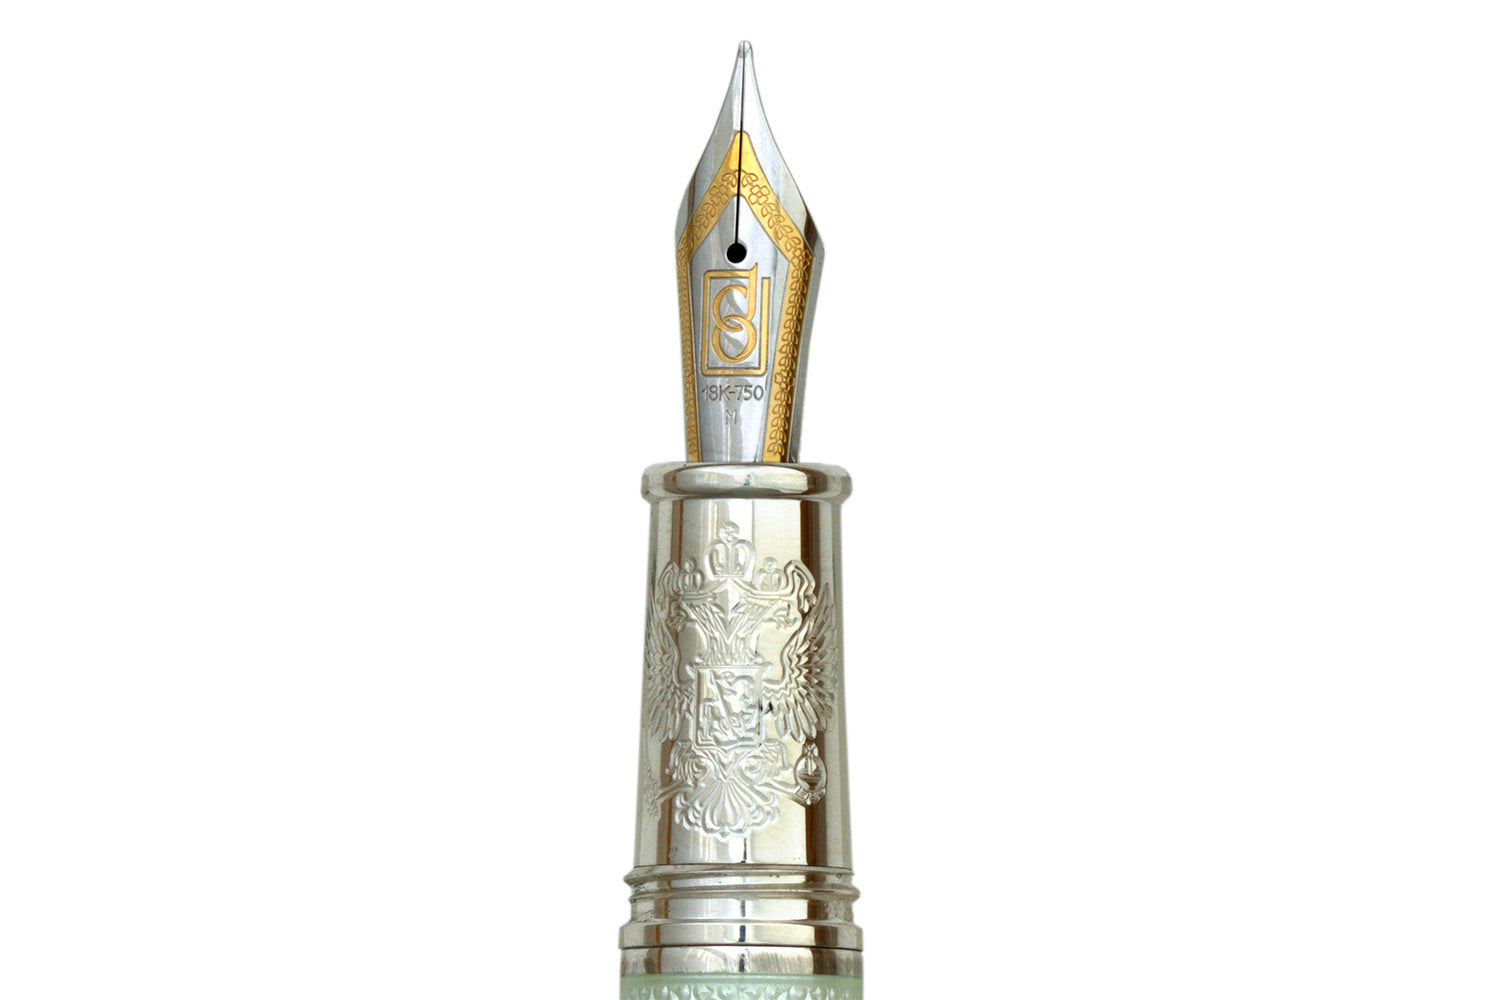 David Oscarson Russian Imperial Fountain Pen - White/Silver